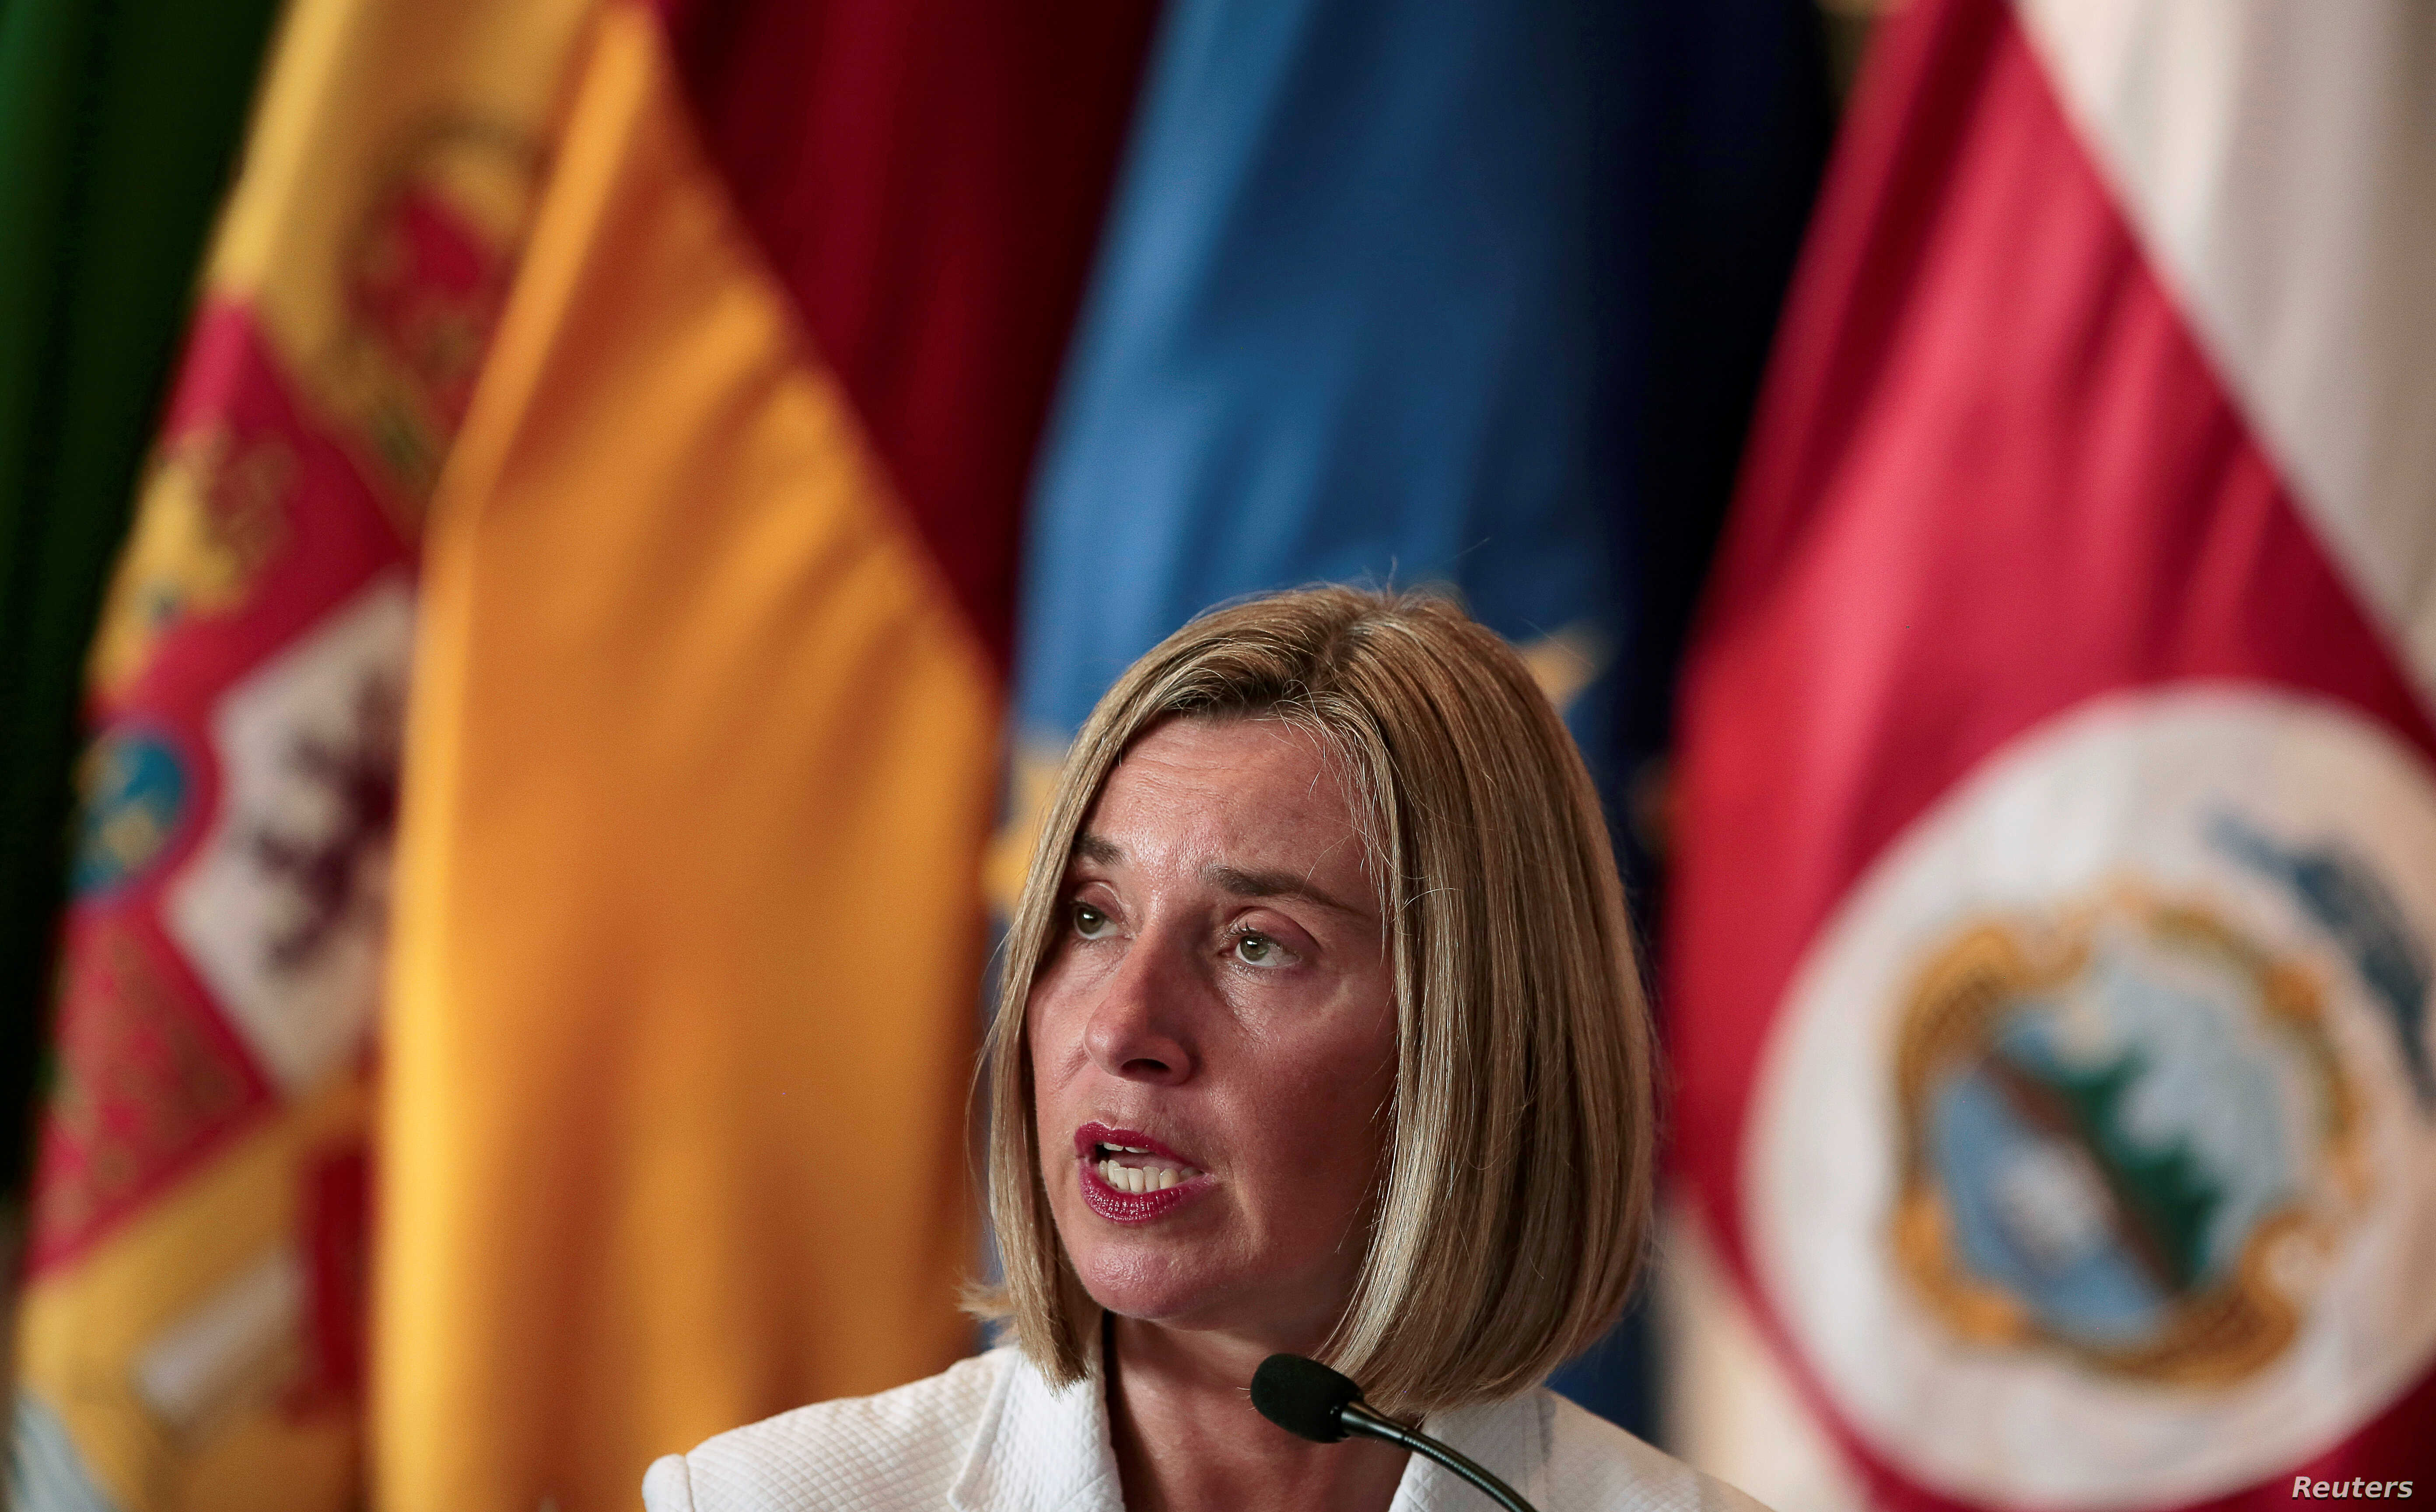 European Union High Representative for Foreign Affairs Federica Mogherini speaks during a news conference after a meeting of the International Contact Group  to discuss their support for a political solution to Venezuela's political crisis, in San Jo...